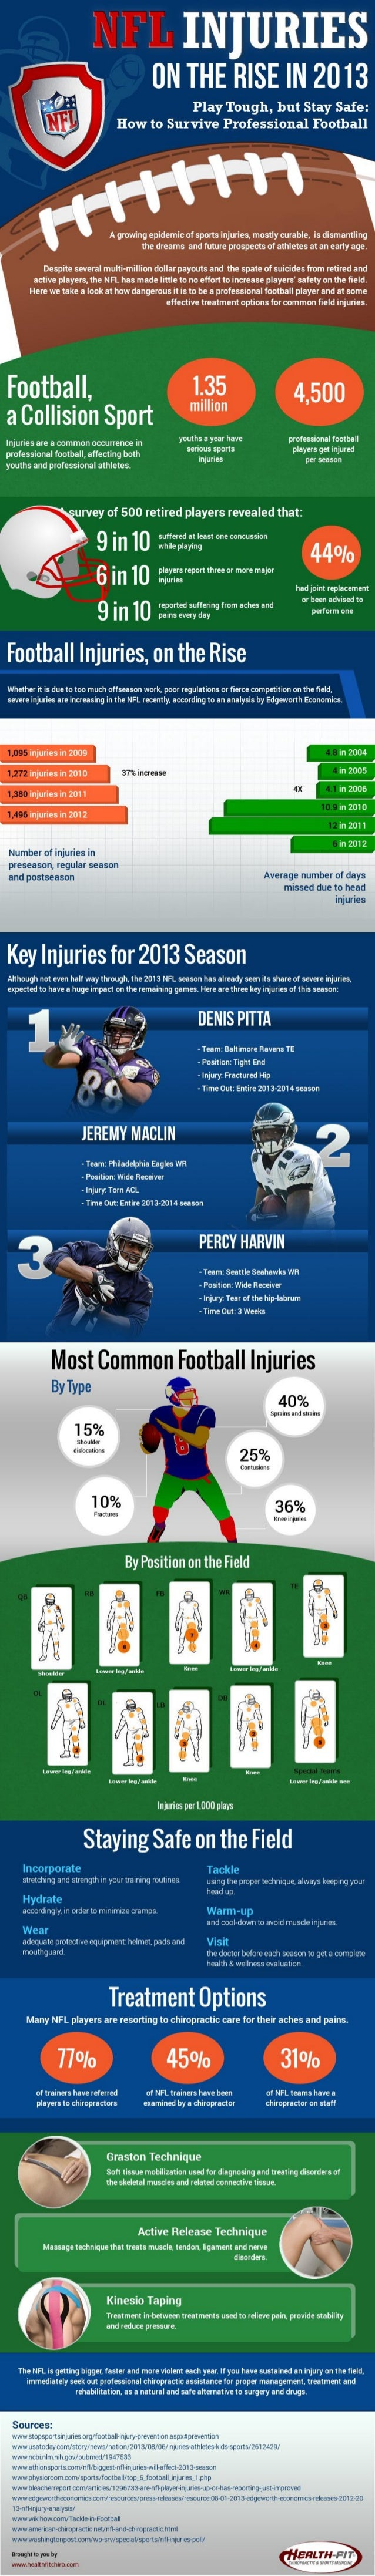 NFL Injuries on the Rise in 2013